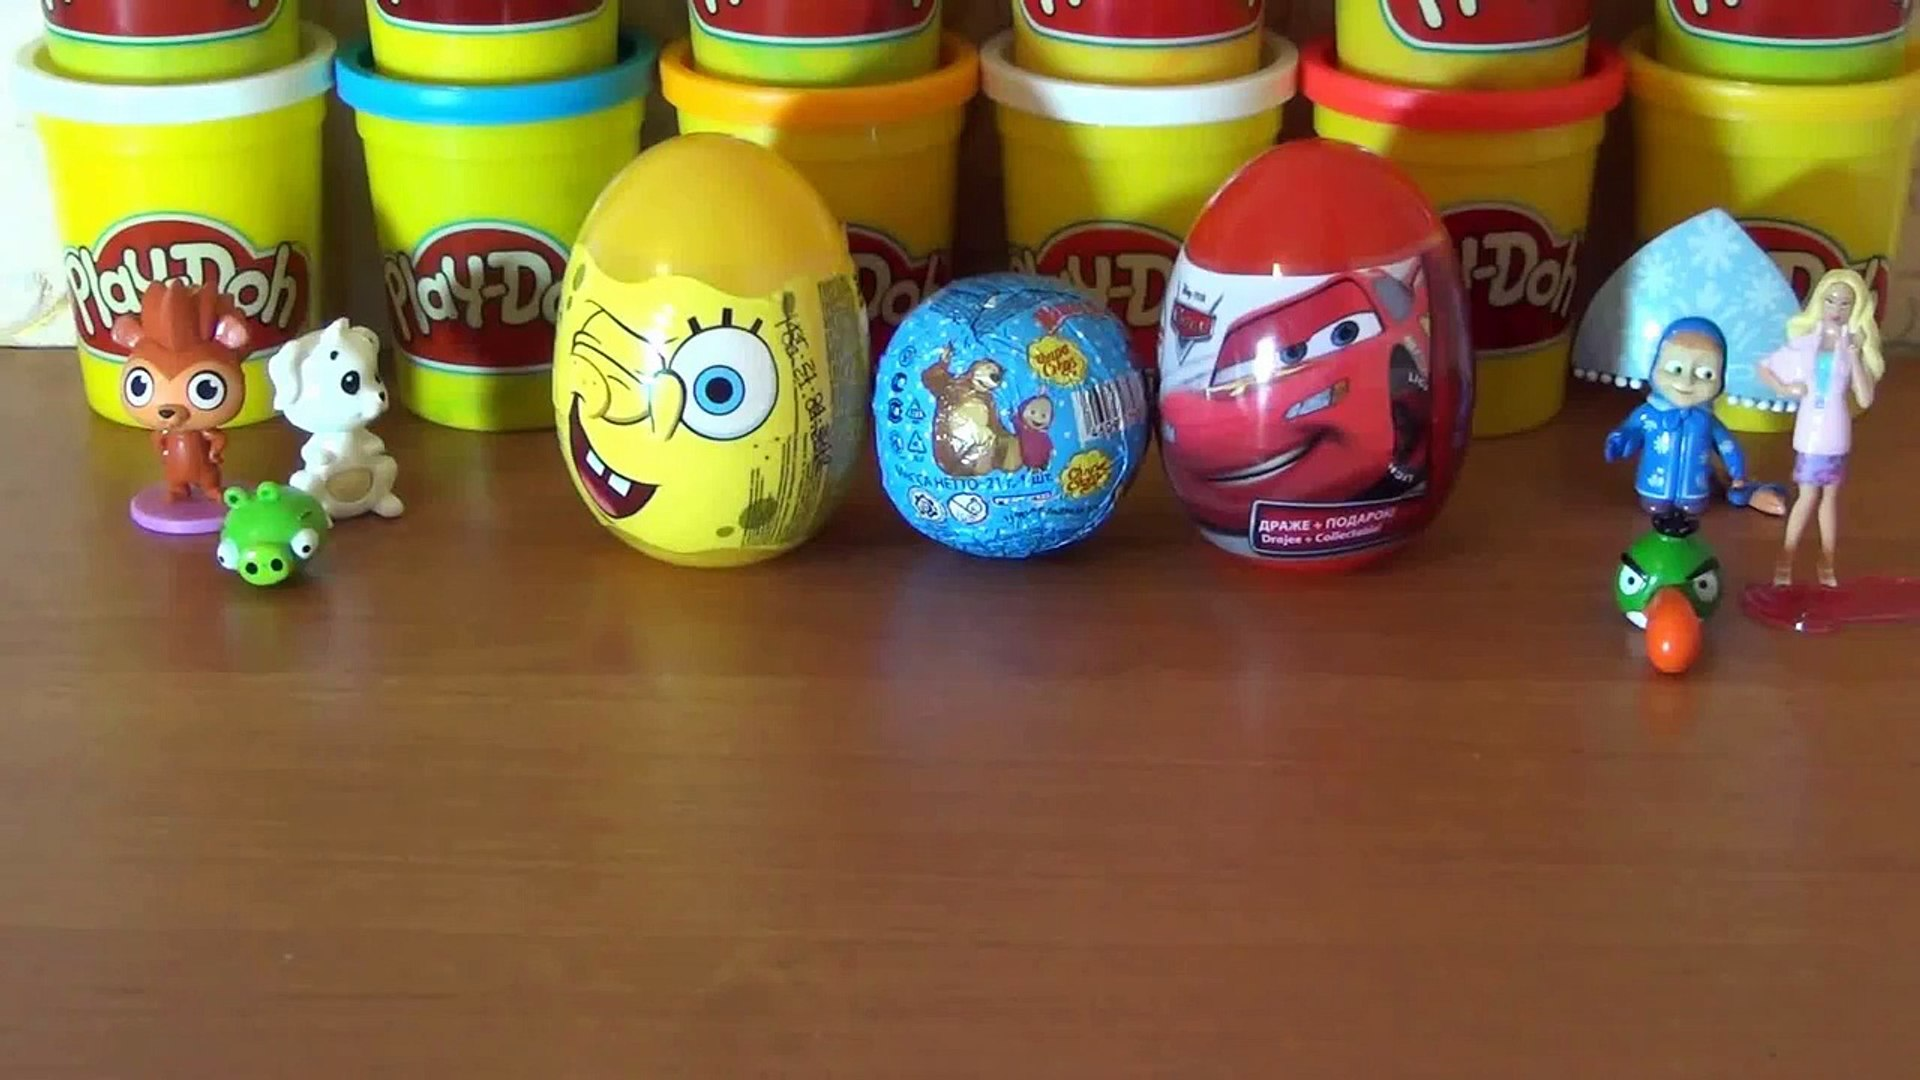 3 Surprise eggs - SpongeBob, Masha and the Bear surprise egg and Disney Pixar Cars surprise egg